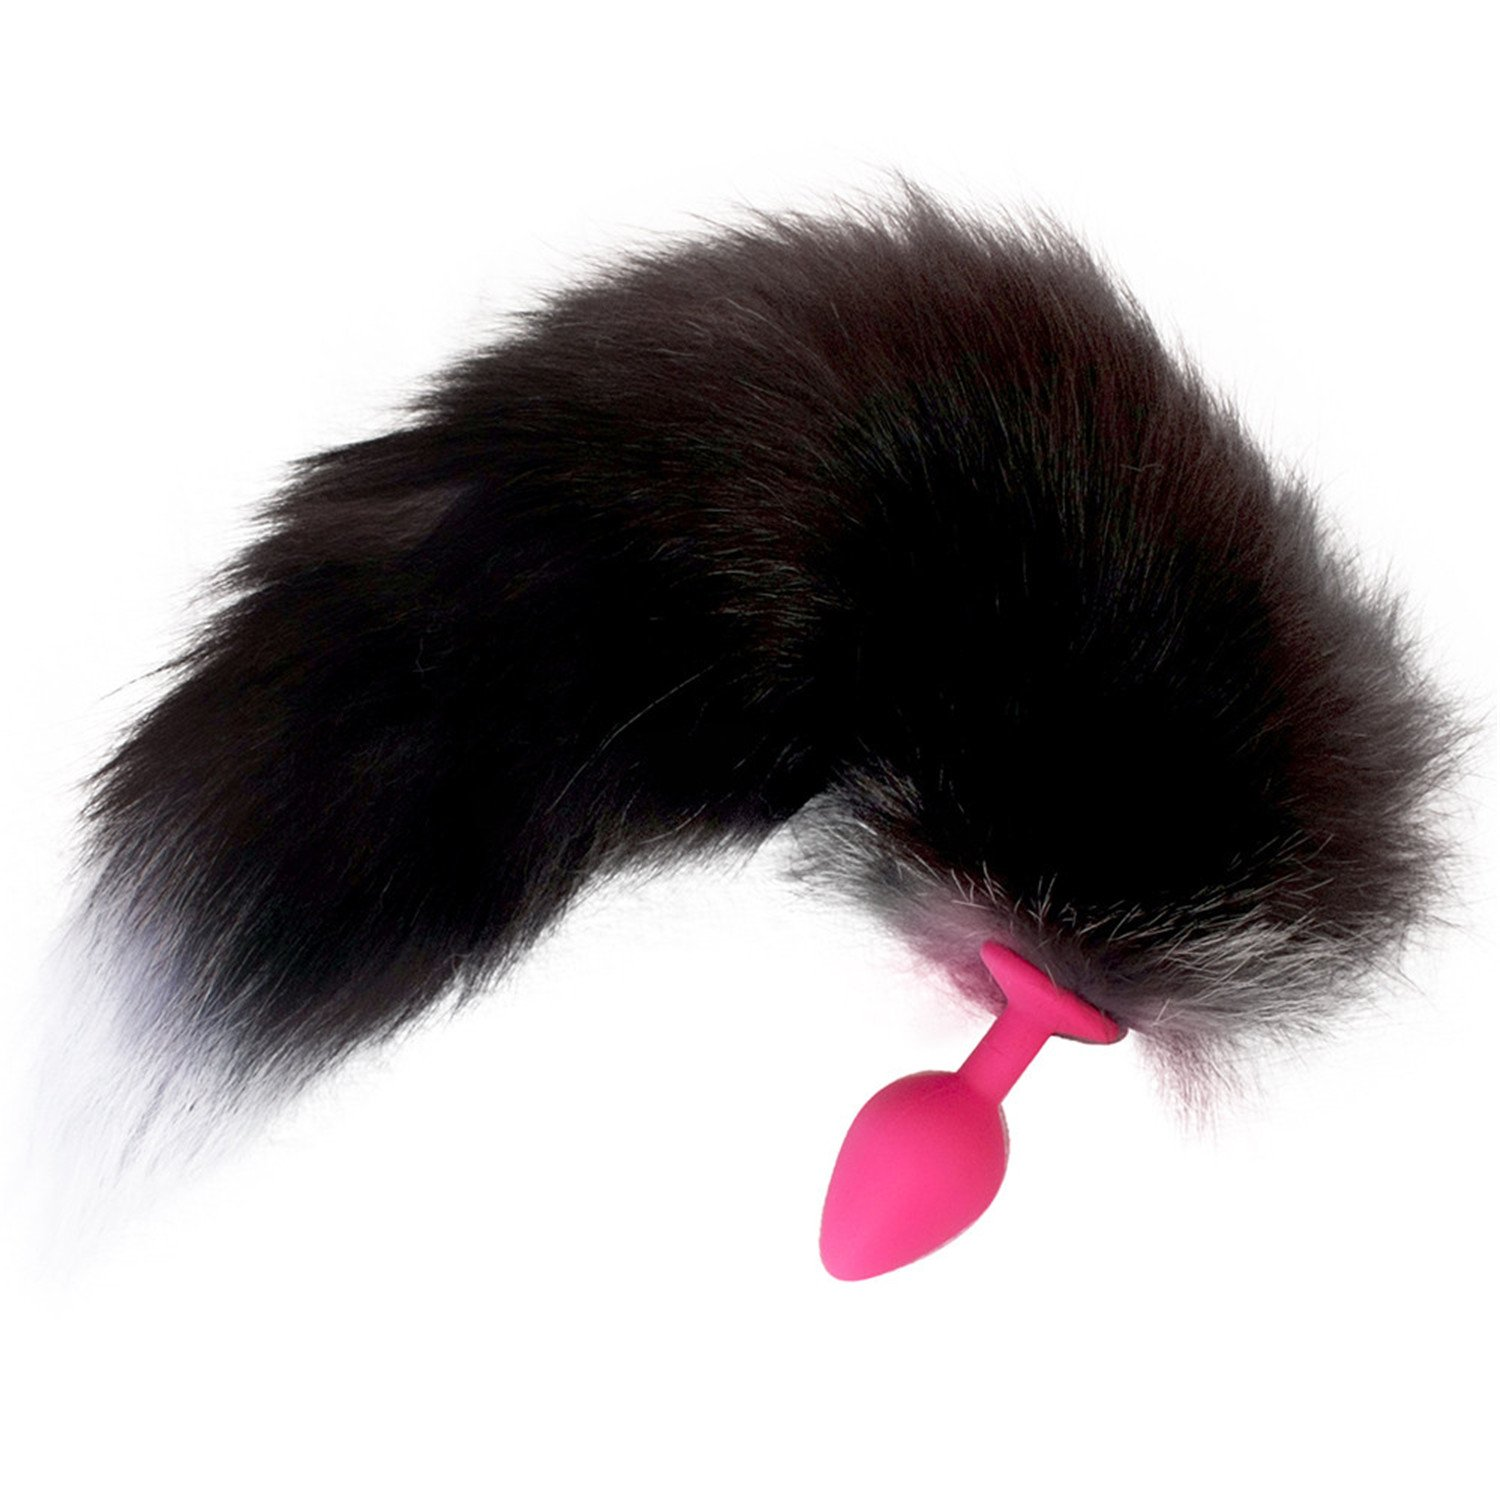 Amazon.com: Sex Games Butt Plug Adult Products Anal Sex Toys for Women  Funny Anal Plug Fox Tail u70324 Fetish Pink: Health & Personal Care